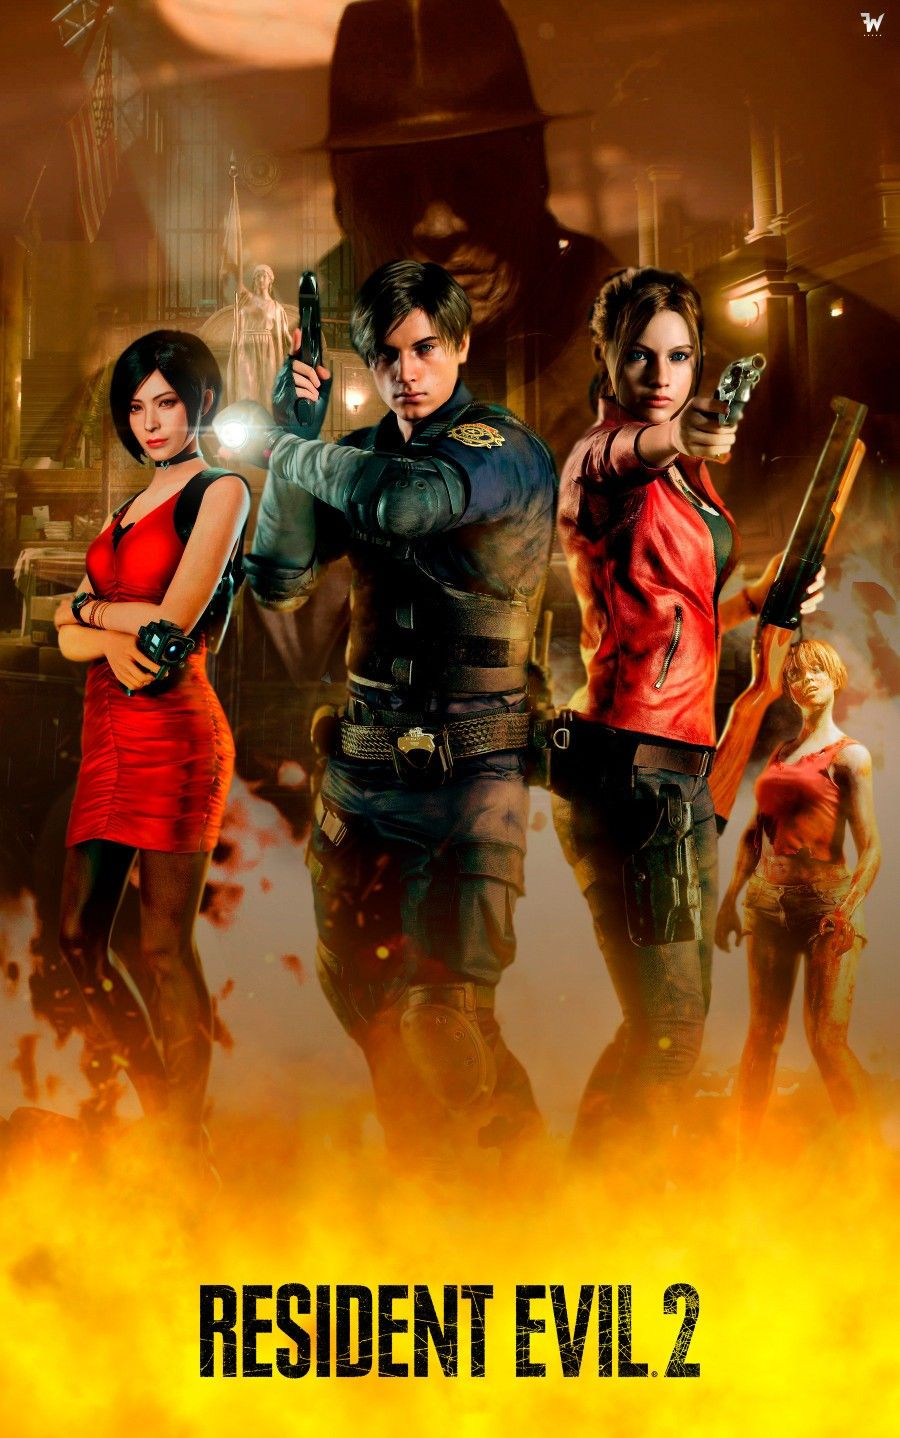 Pin By Gina Marie On Resident Evil With Images Resident Evil